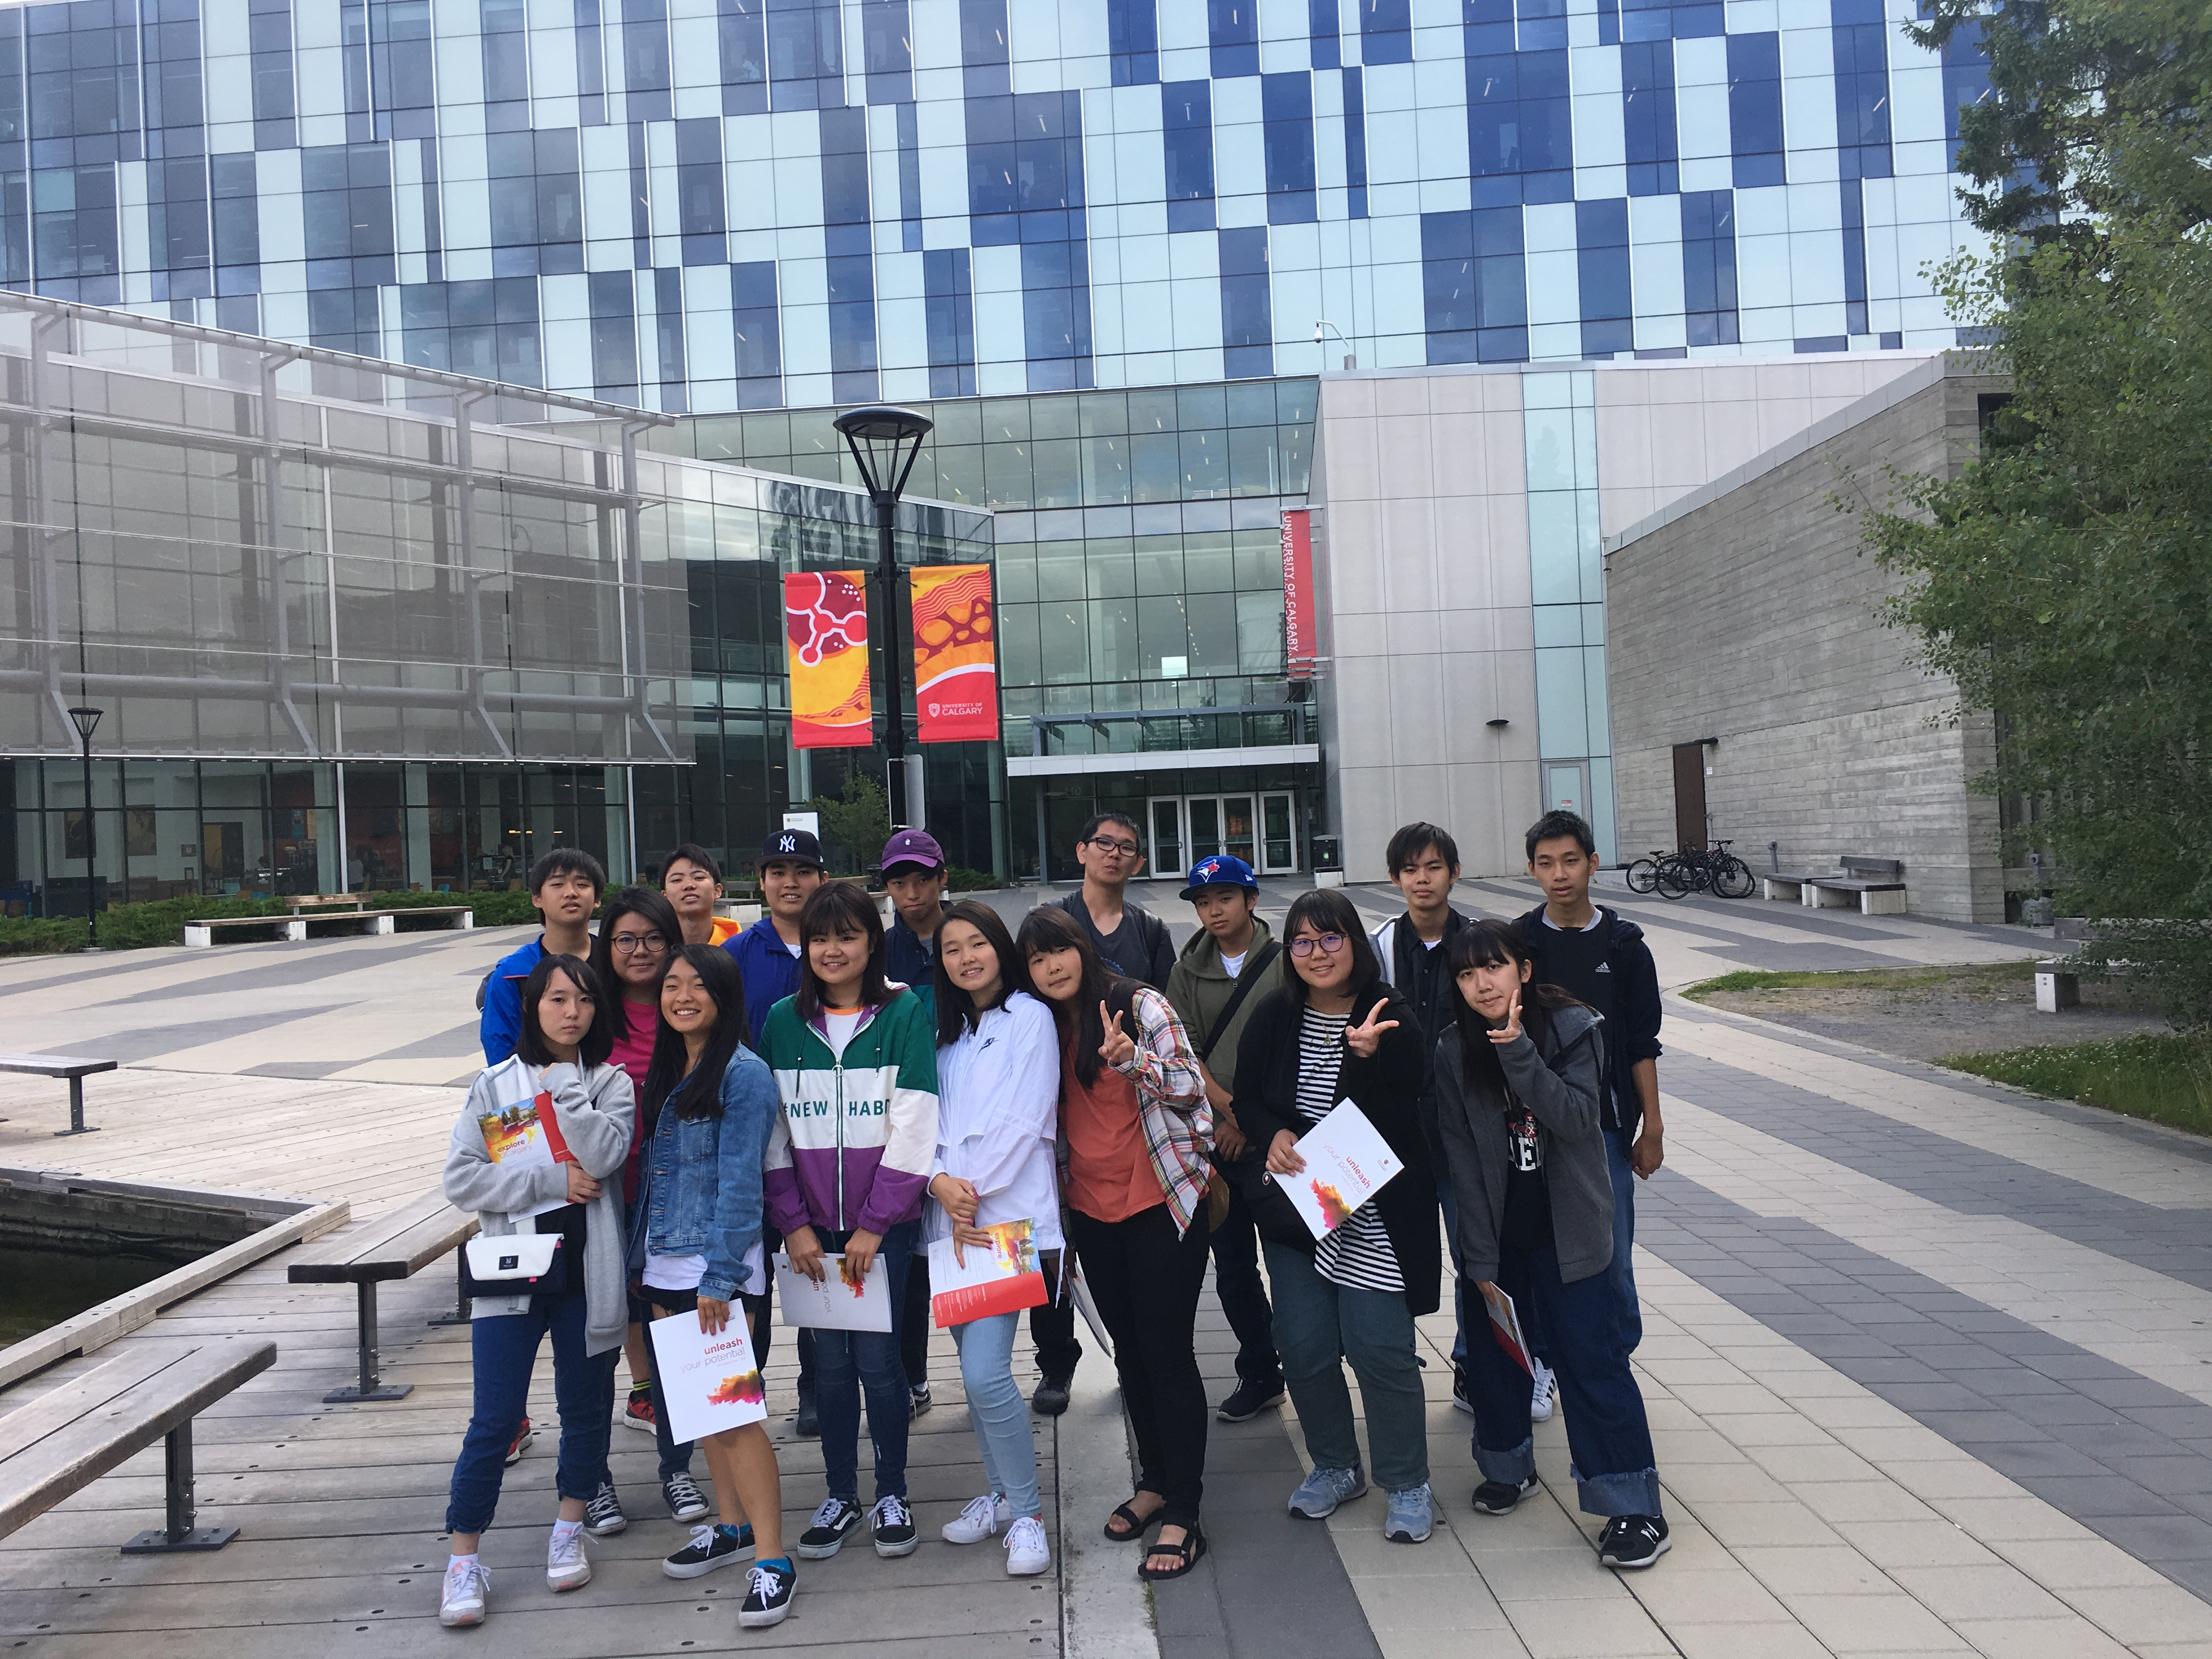 University of Calgary Campus Tour